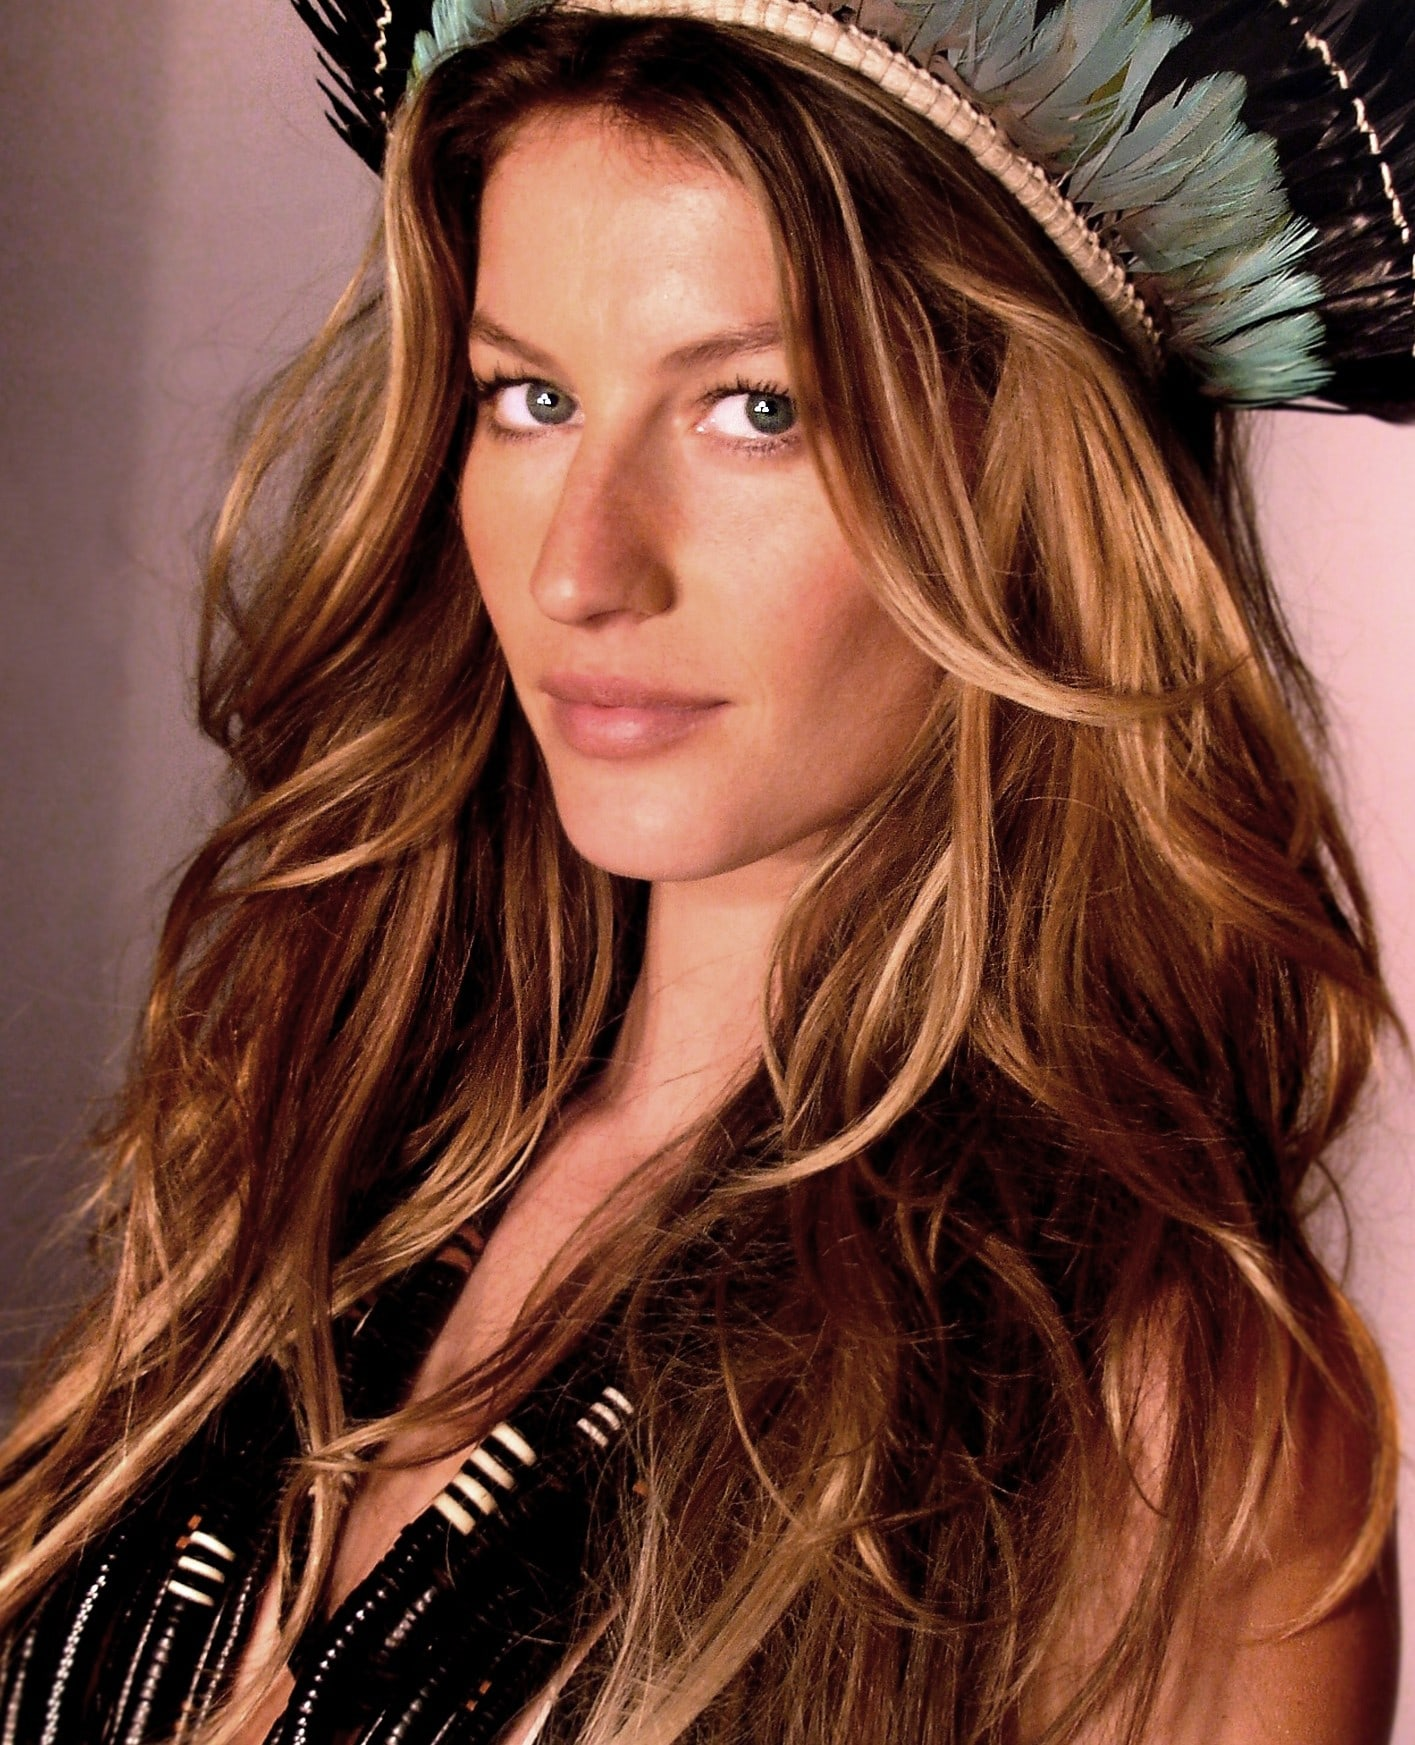 Gisele Bundchen HQ wallpapers